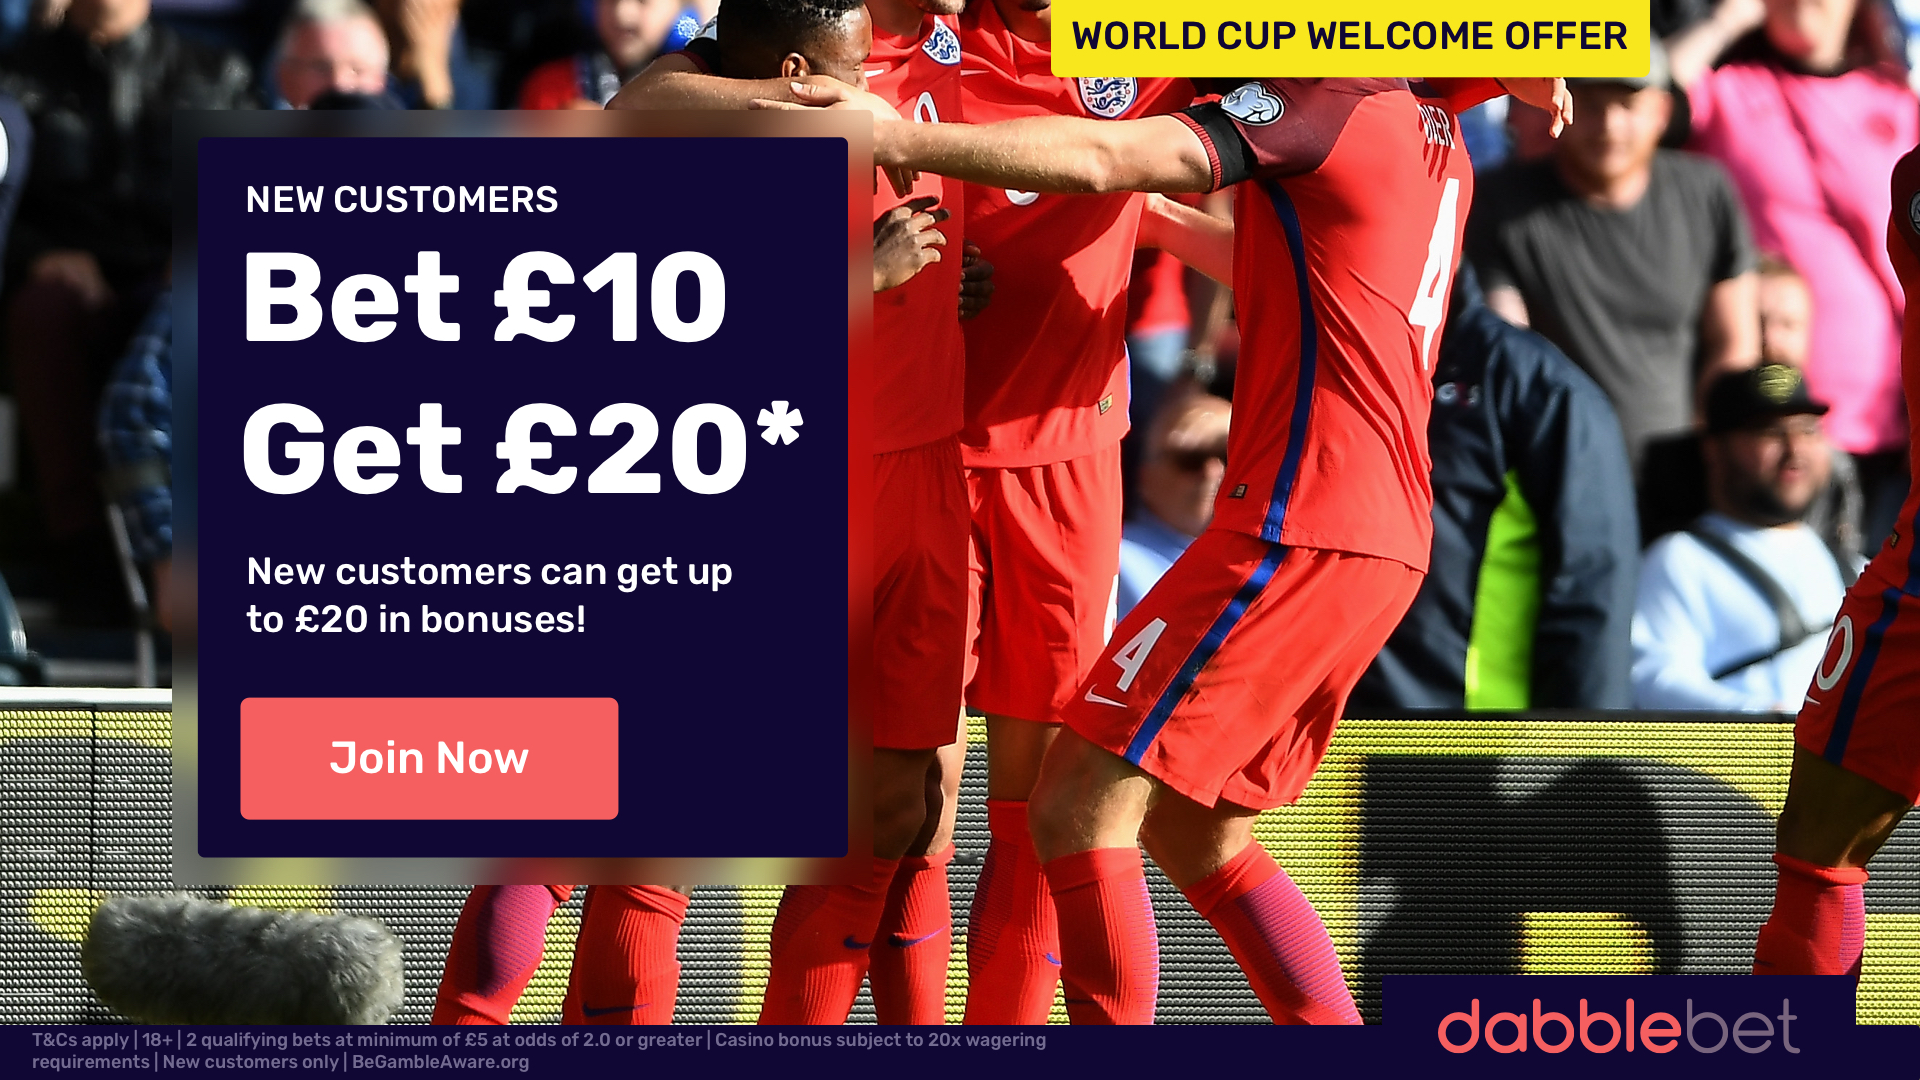 dabblebet get 10 get 20 offer in article